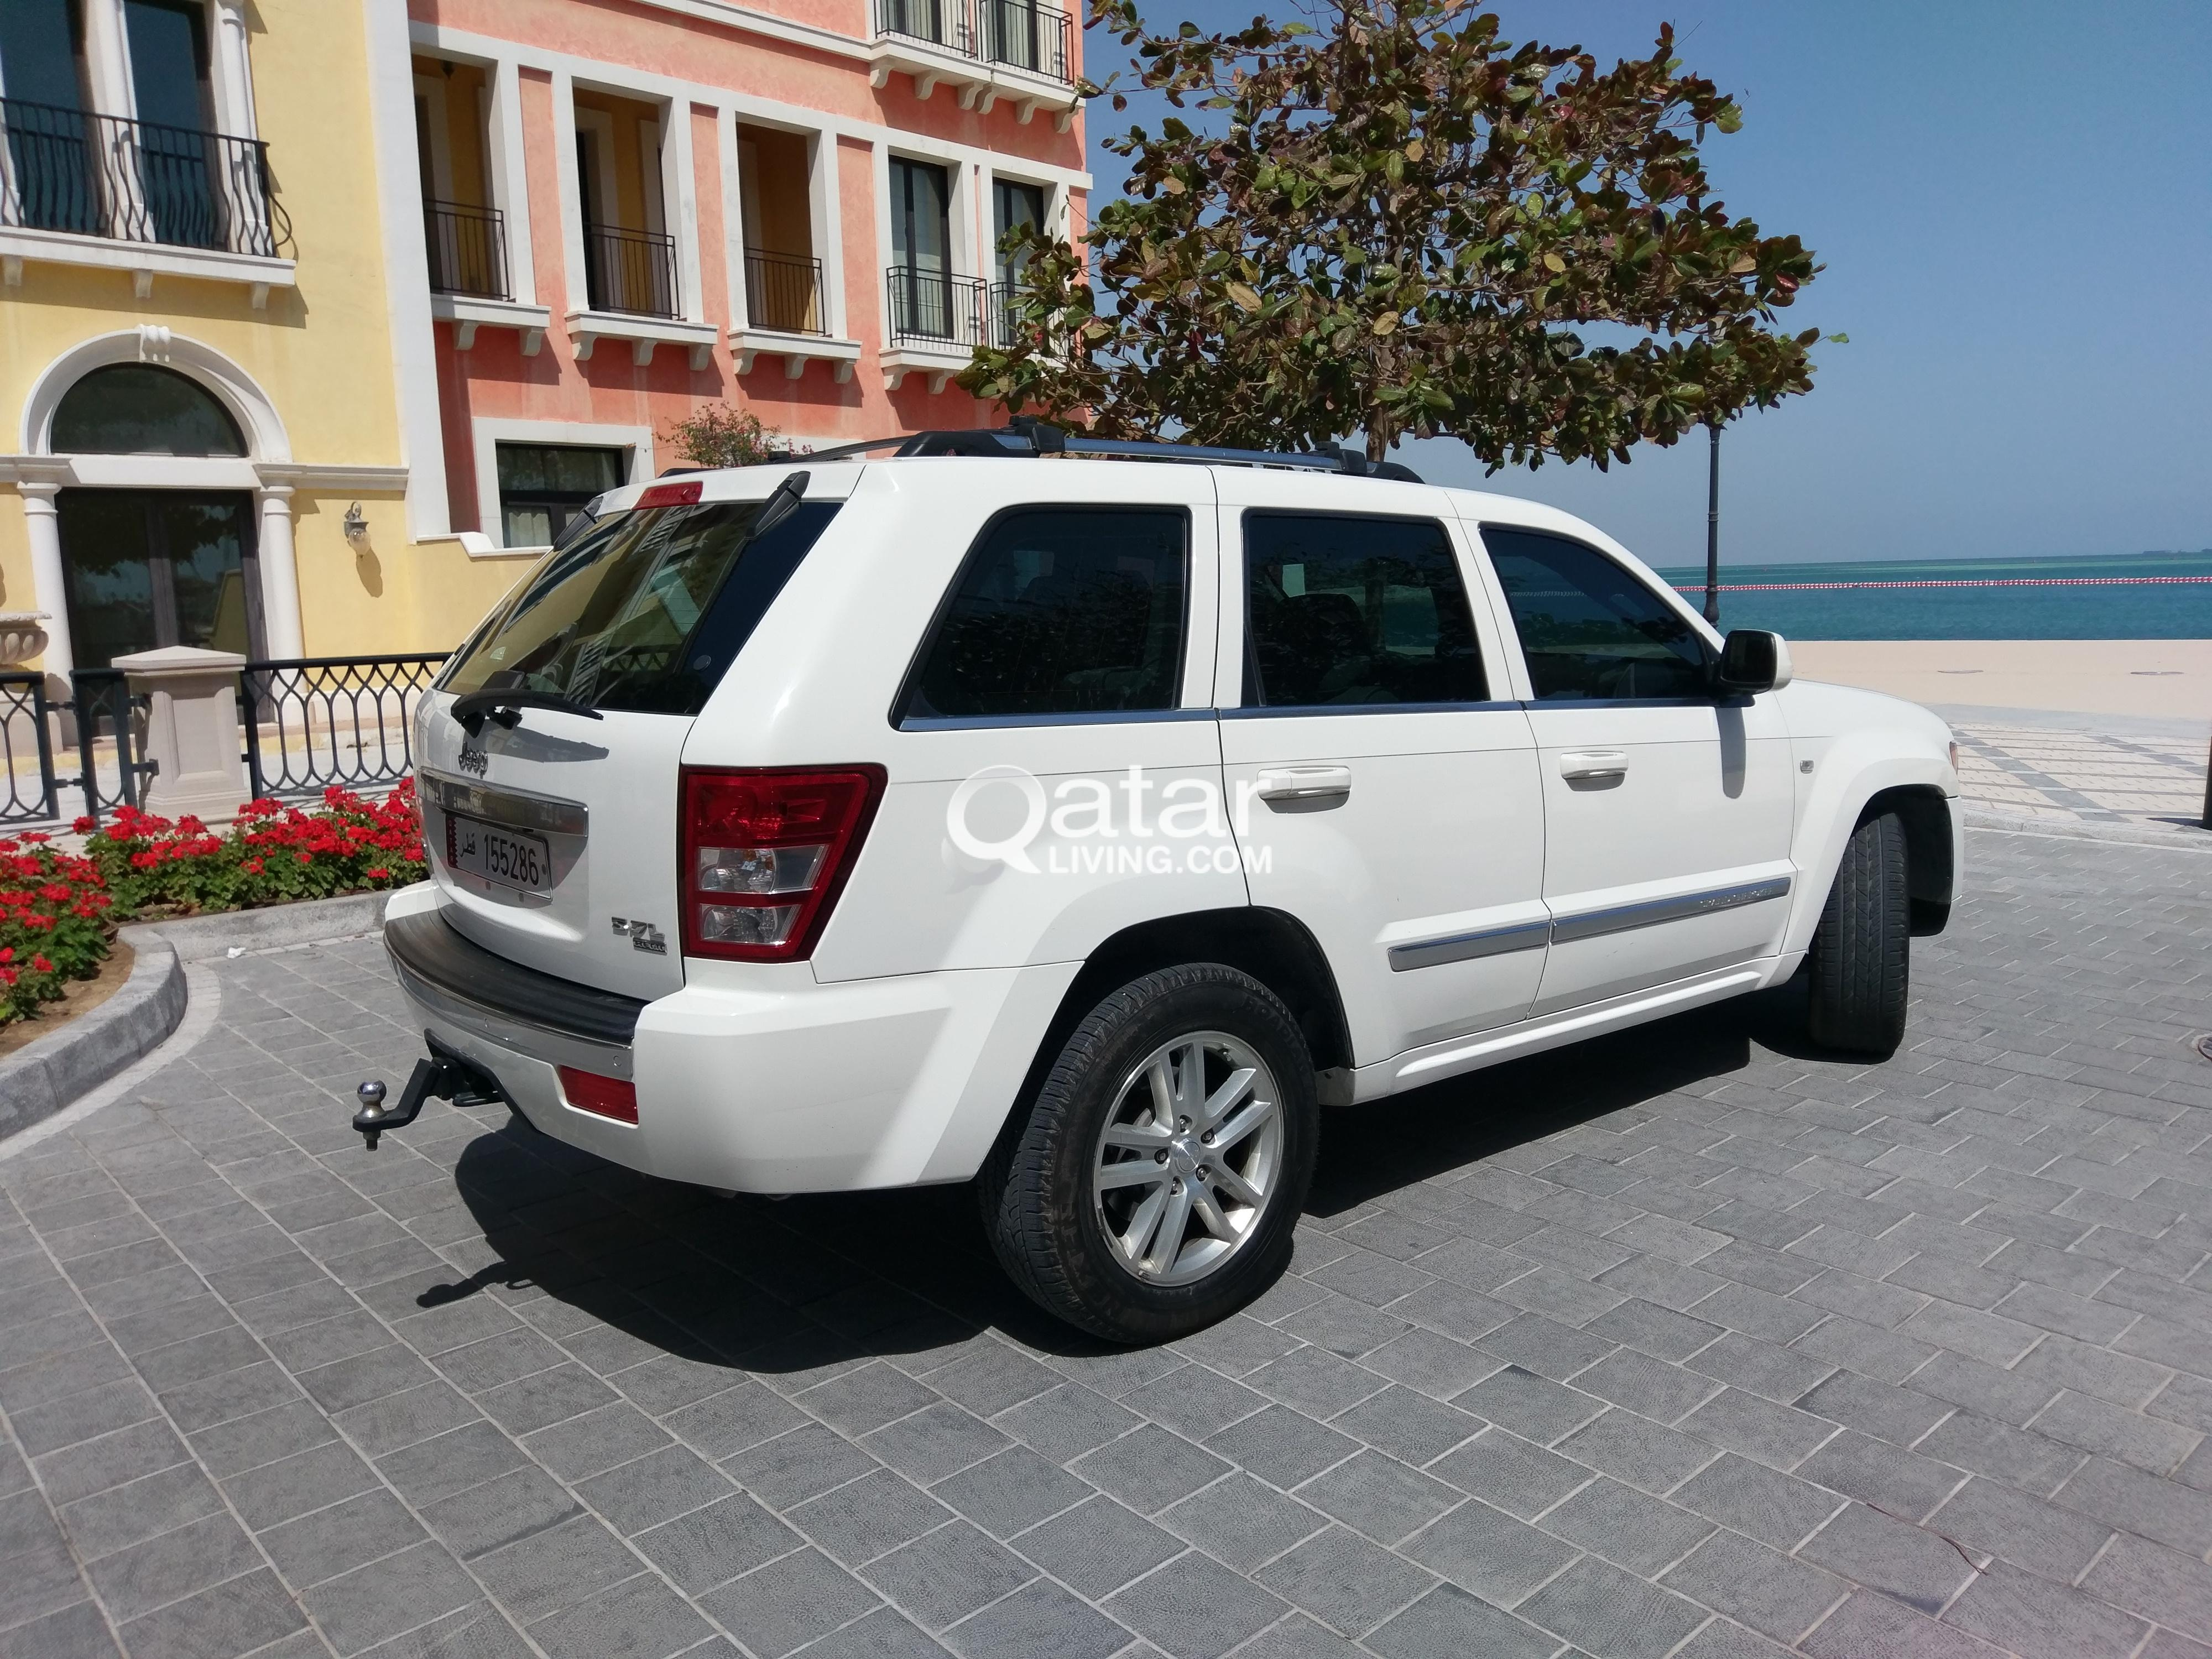 overland suv cherokee stock used west carsforsale fl fine jeep for rbbnzxkeakqb palm florida grand cars sale in